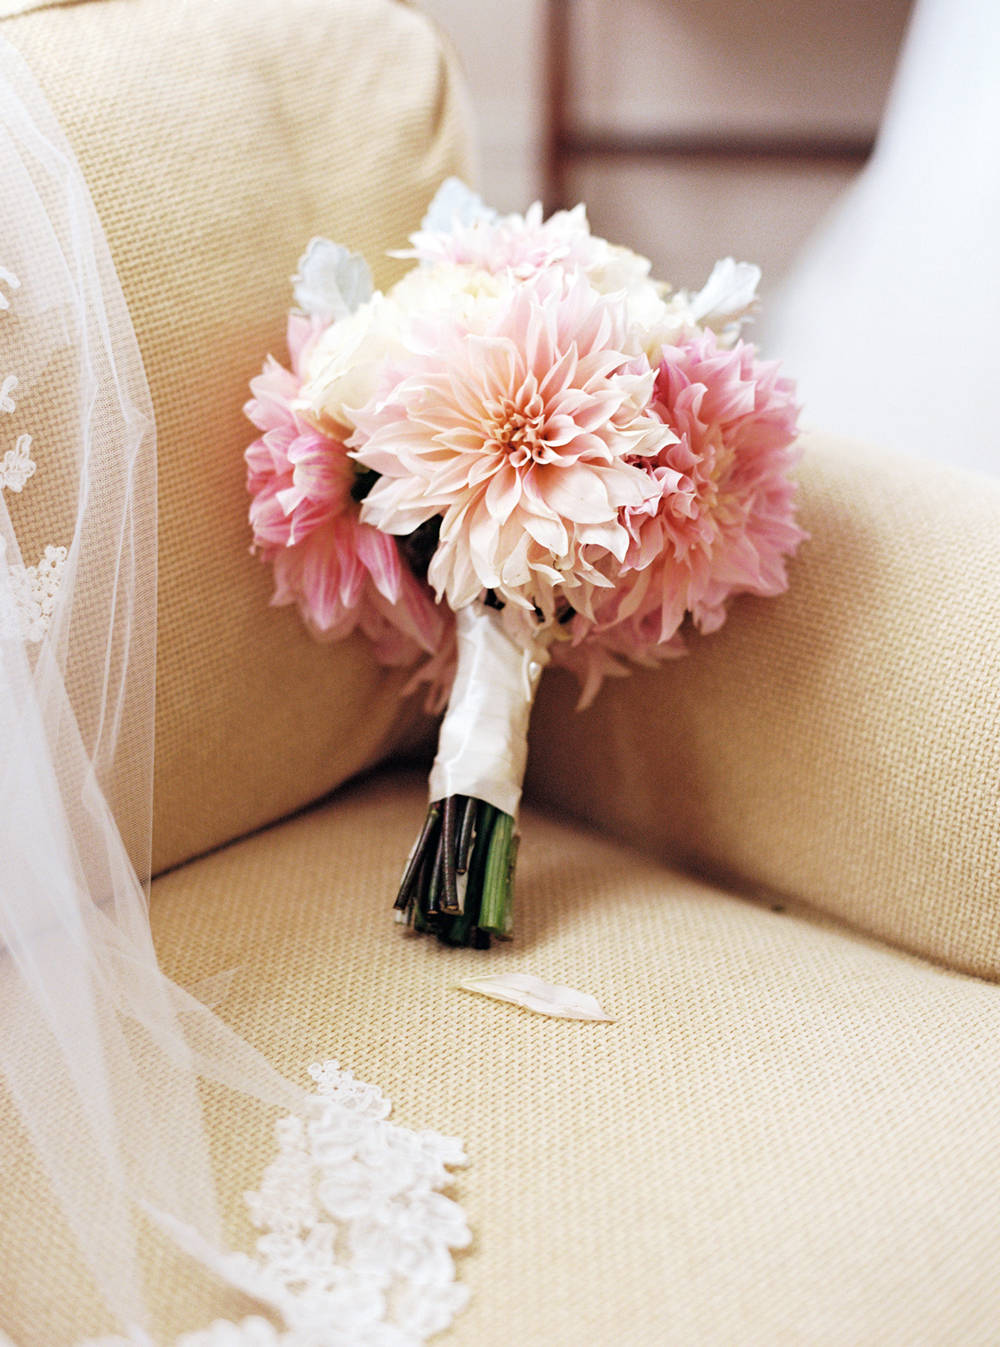 single flower wedding bouquet pink dahlias on tan couch